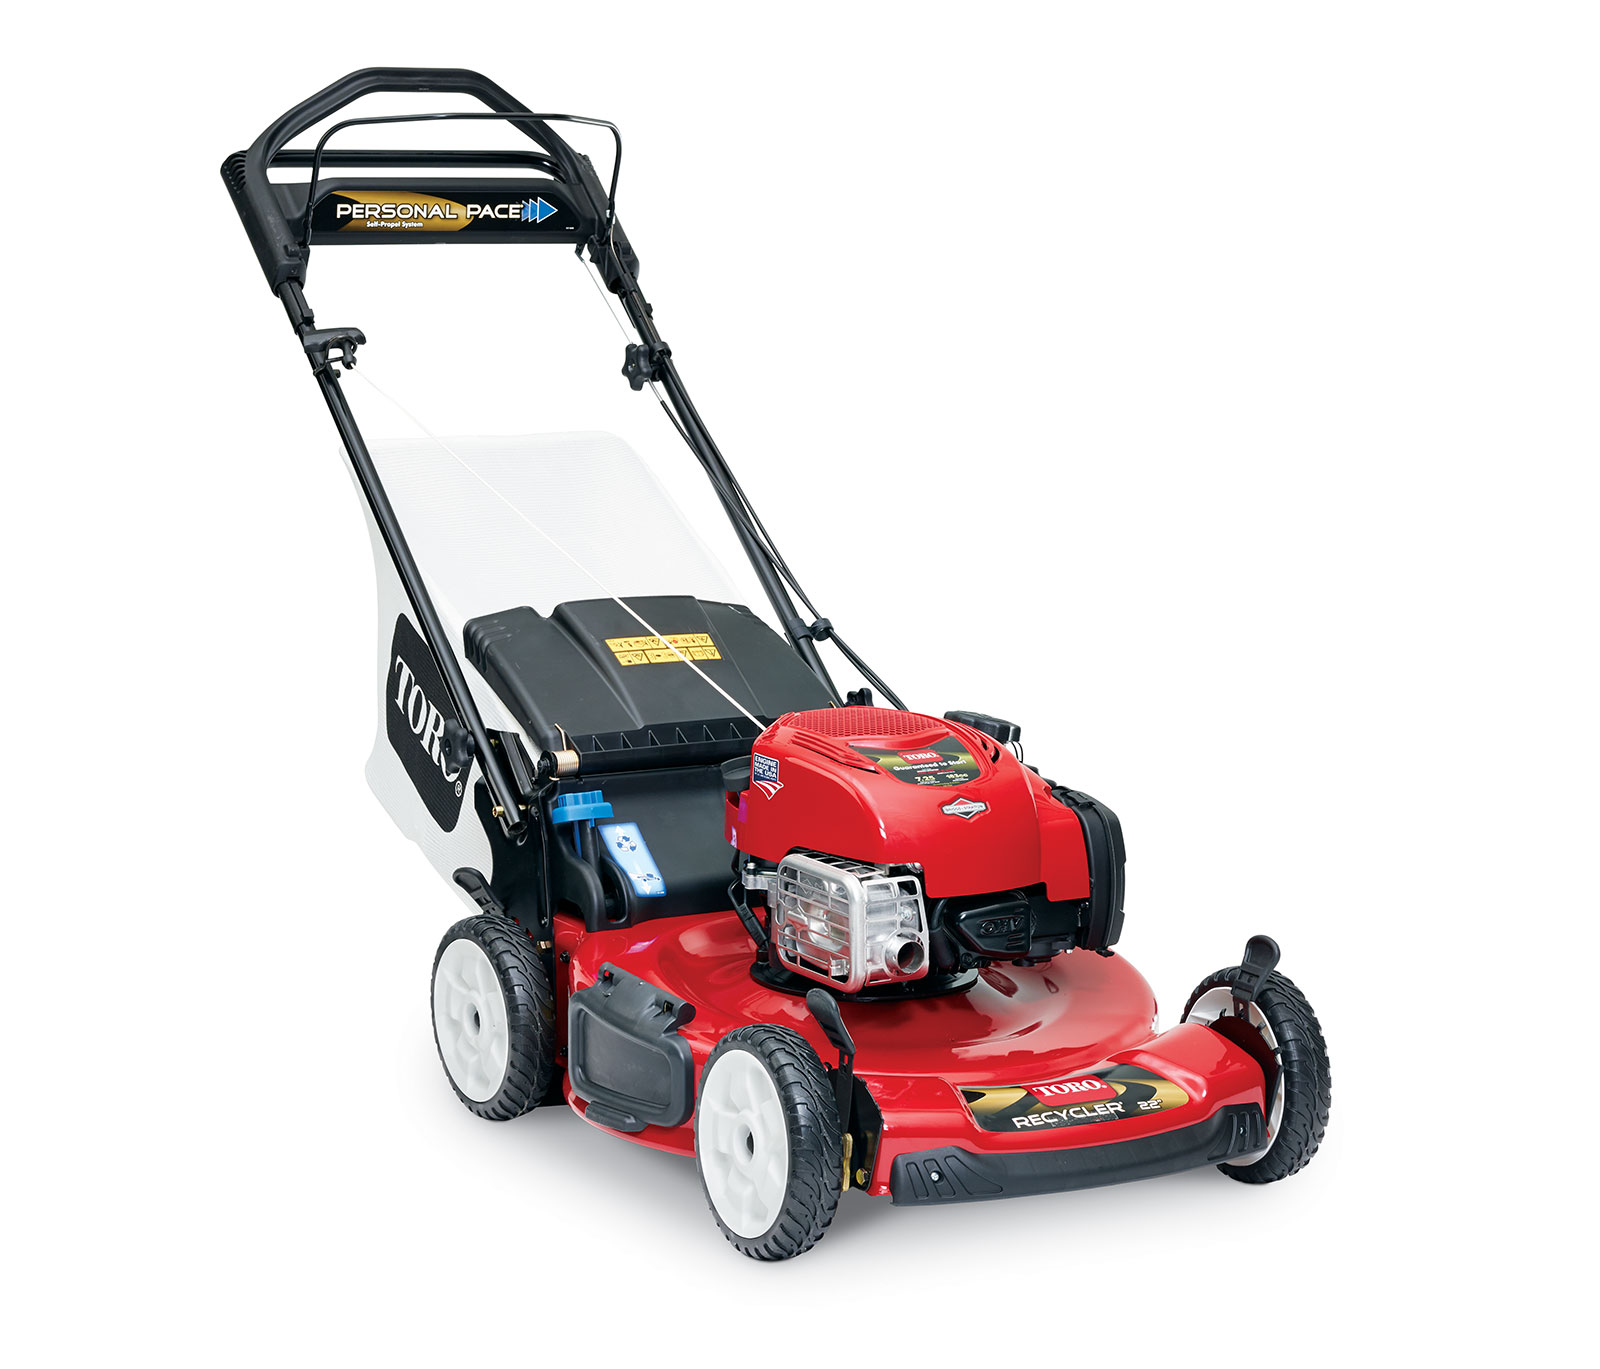 toro 6 75 recycler owners manual enthusiast wiring diagrams u2022 rh rasalibre co toro 190cc recycler lawn mower manual toro lawn mower 190cc manual